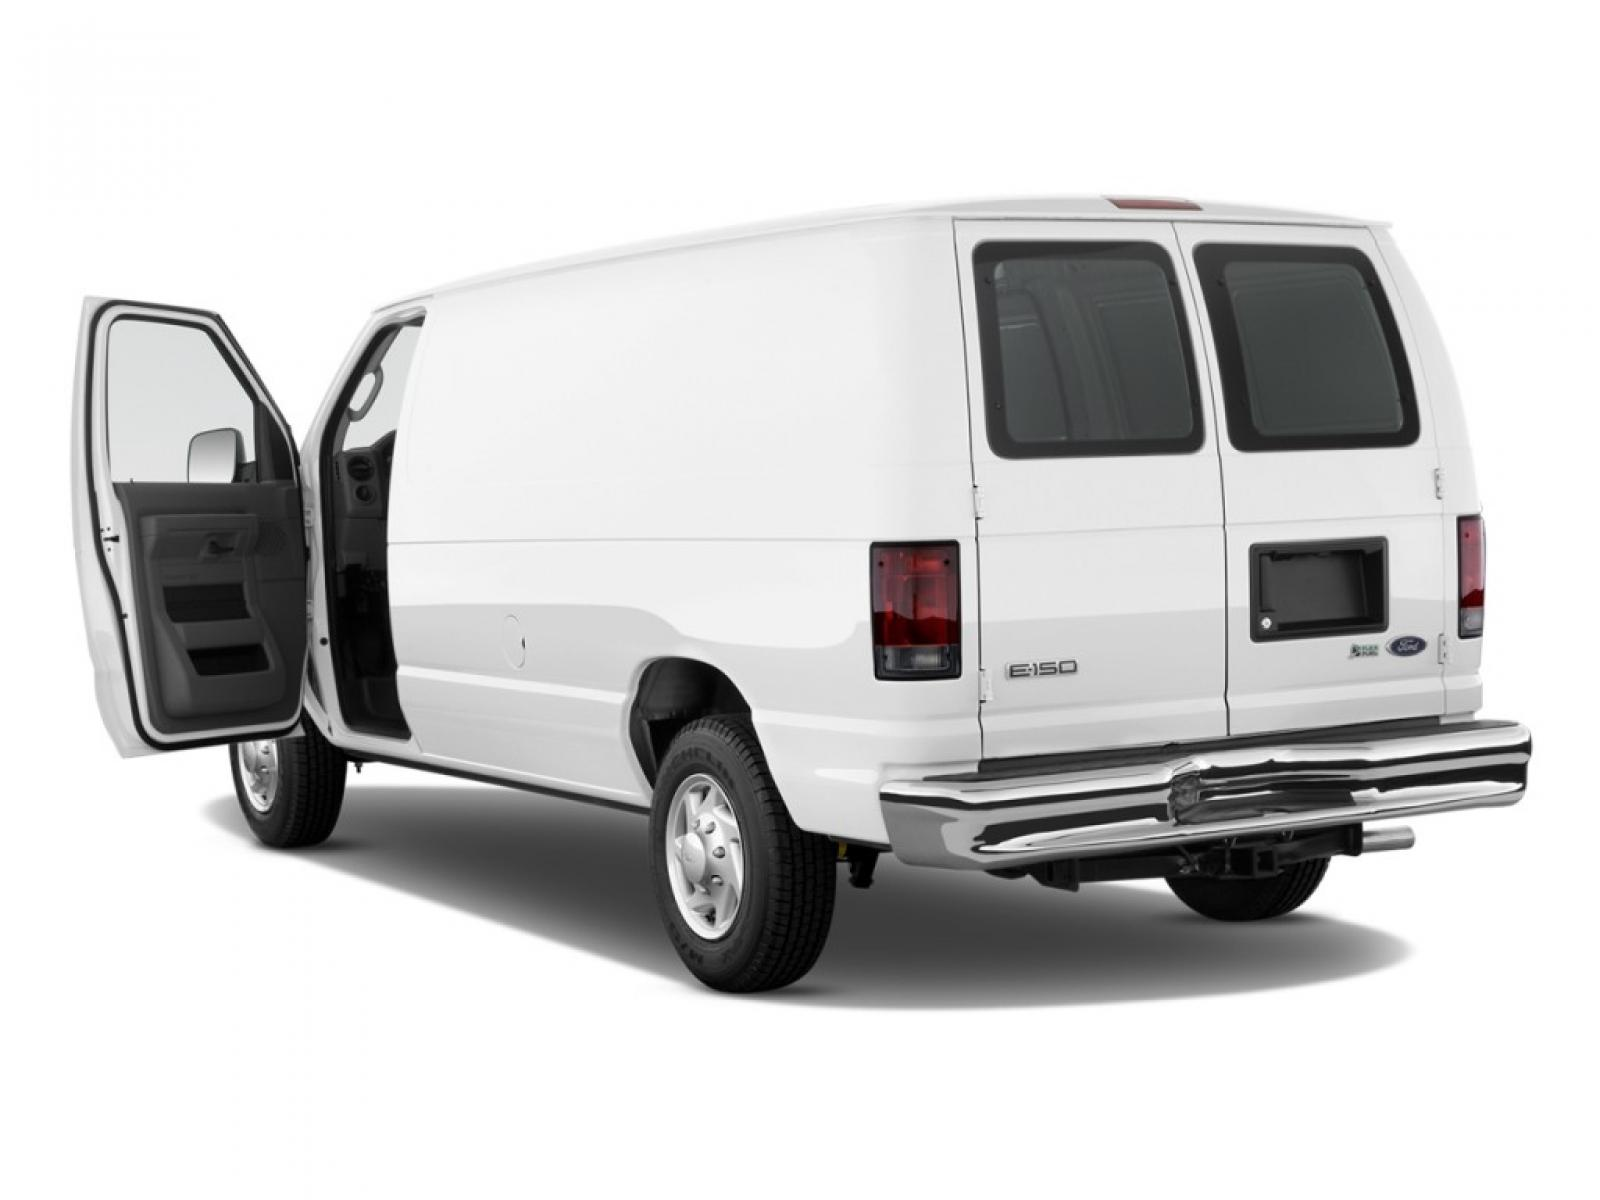 hight resolution of 800 1024 1280 1600 origin 2006 ford econoline